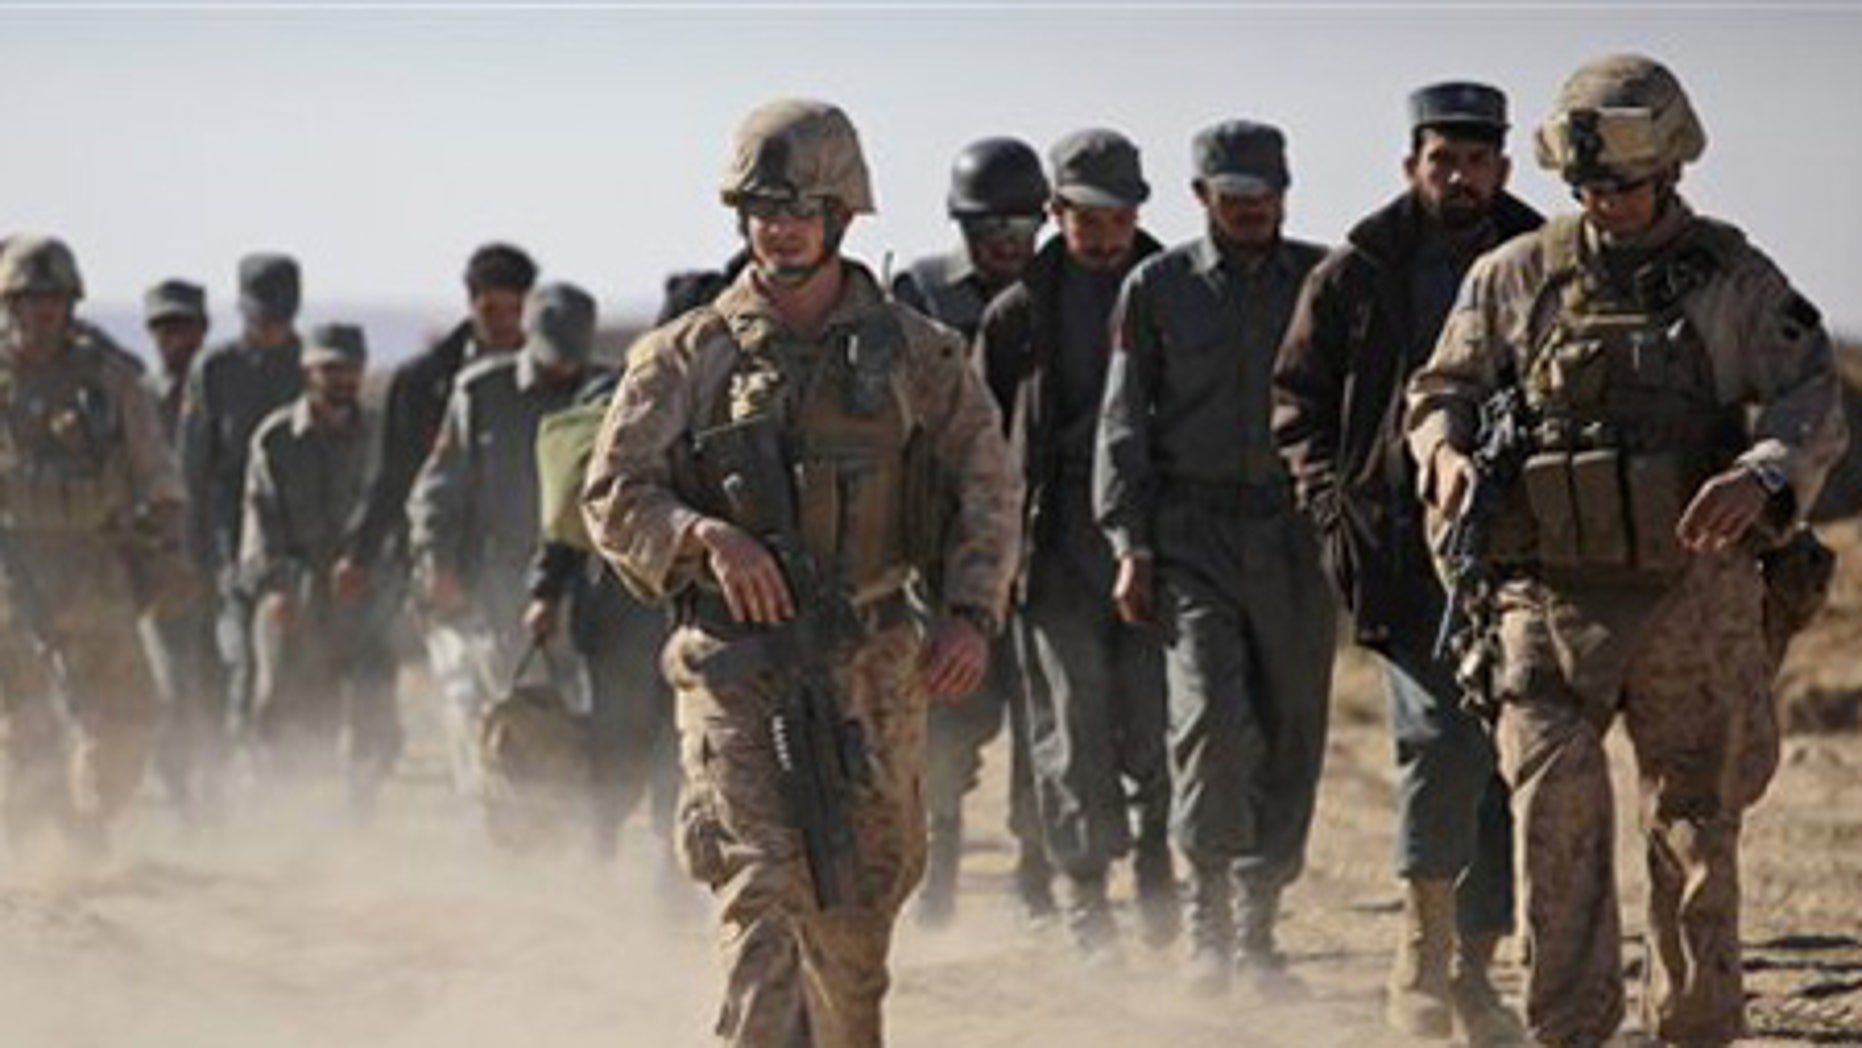 Dec. 5: U.S. Marines escort new Afghan National Police officers to their base in Khan Neshin in the province of Helmand, southern Afghanistan.